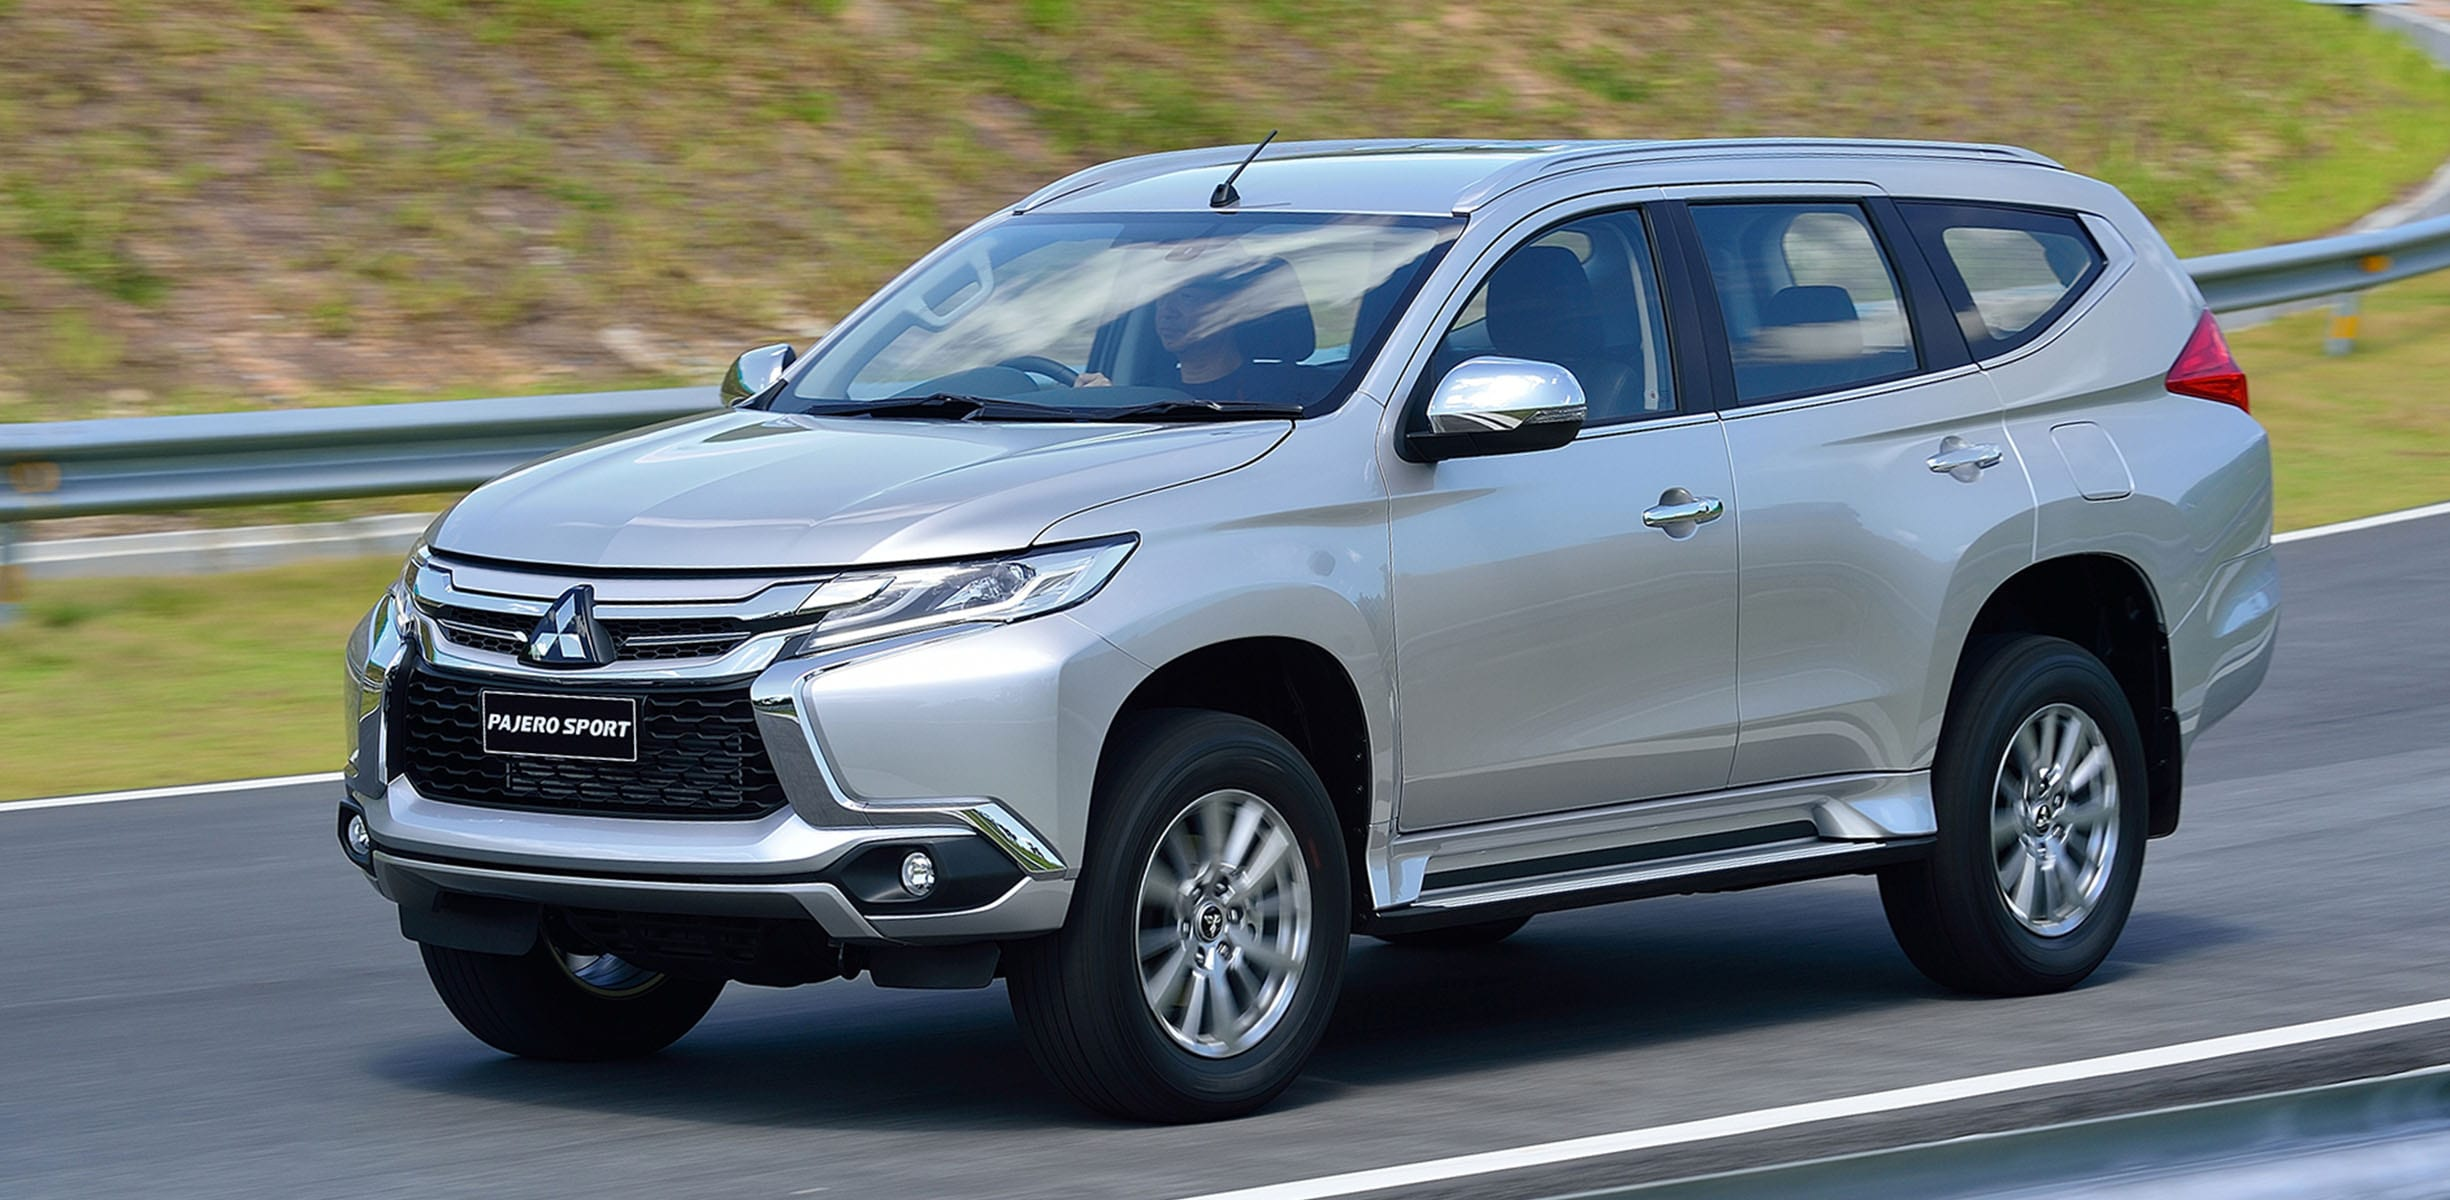 Mitsubishi Pajero Sport 3 Full hd wallpapers